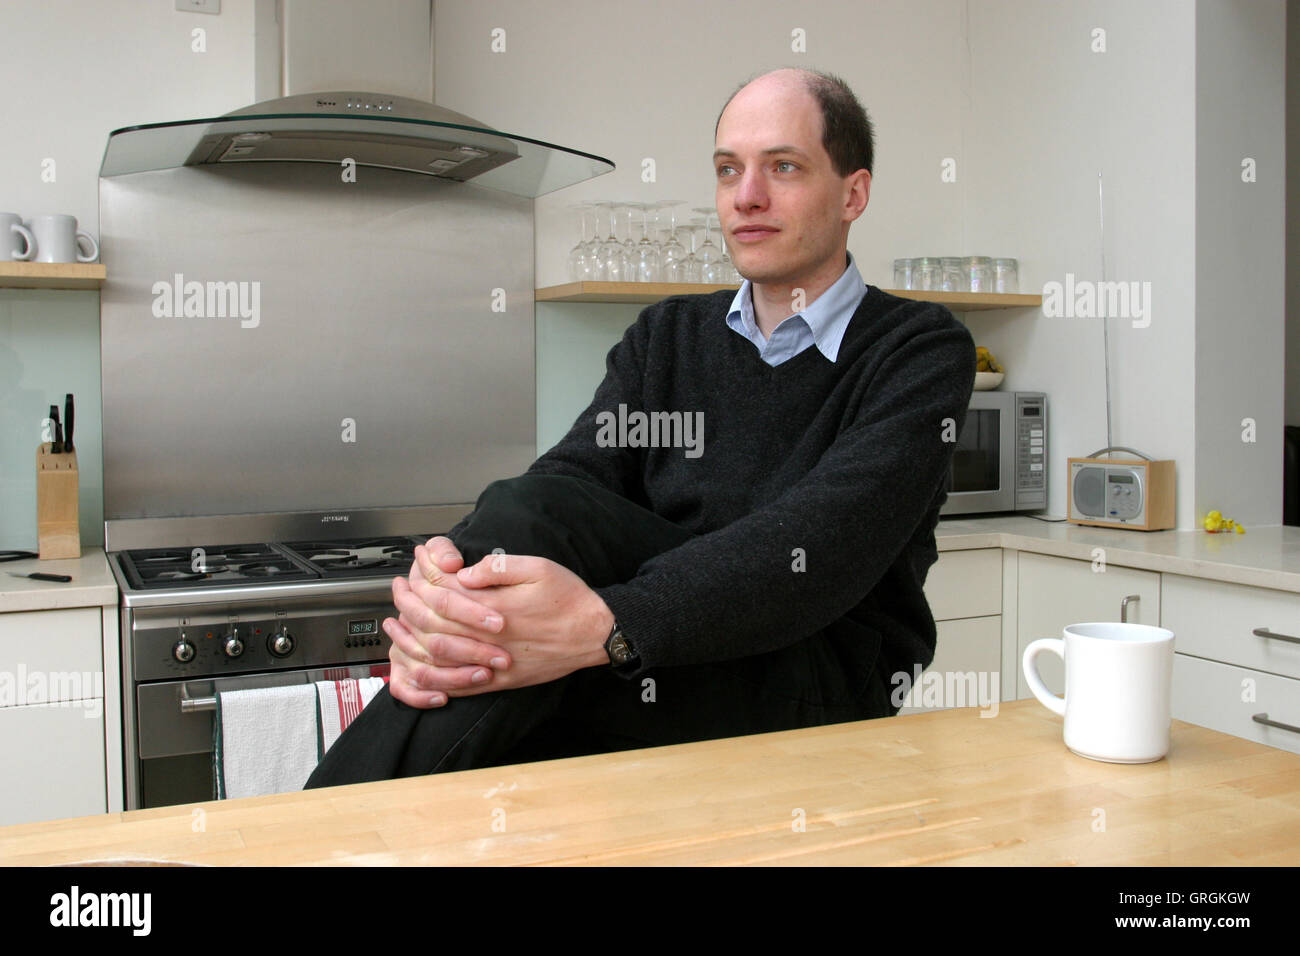 He Has Also Written A Novel Essays In Love Stock Photos  He Has  Philosopher Alain De Botton At Home In London Author Of The Architecture  Of Happiness Essays In English also Essay On Religion And Science Narrative Essay Topics For High School